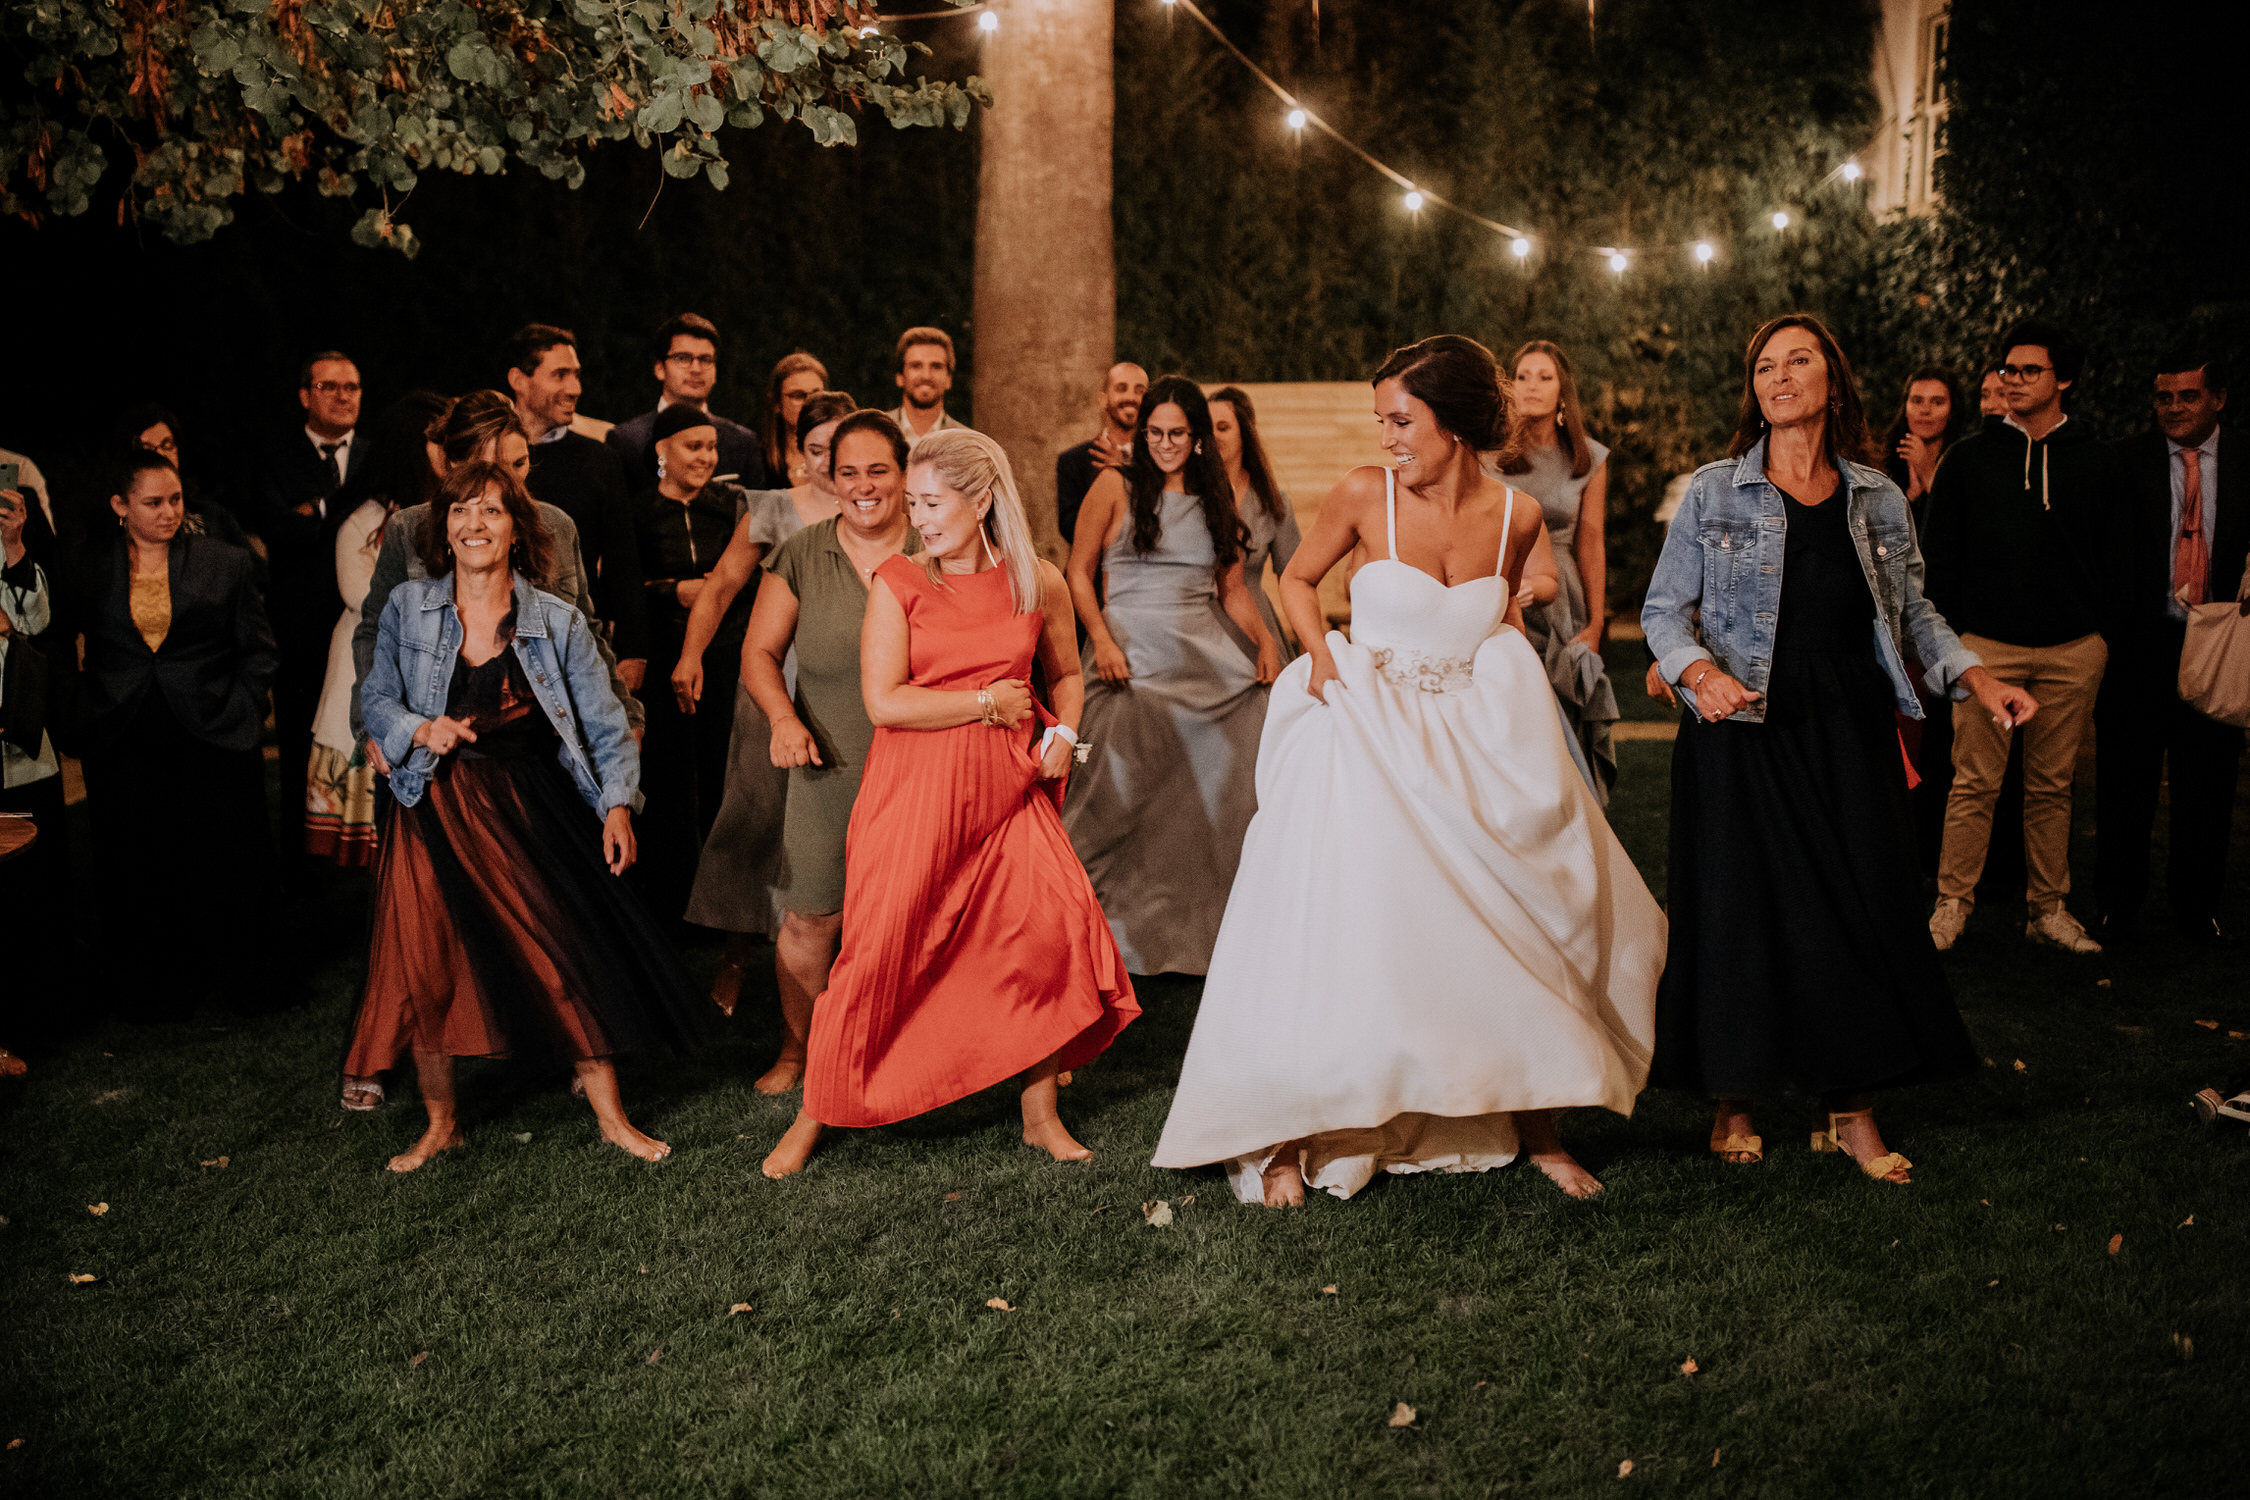 108 Filipe Santiago Fotografia Casamento wedding photographer near venue Lisbon Malveira Ericeira best Sintra Portugal destination